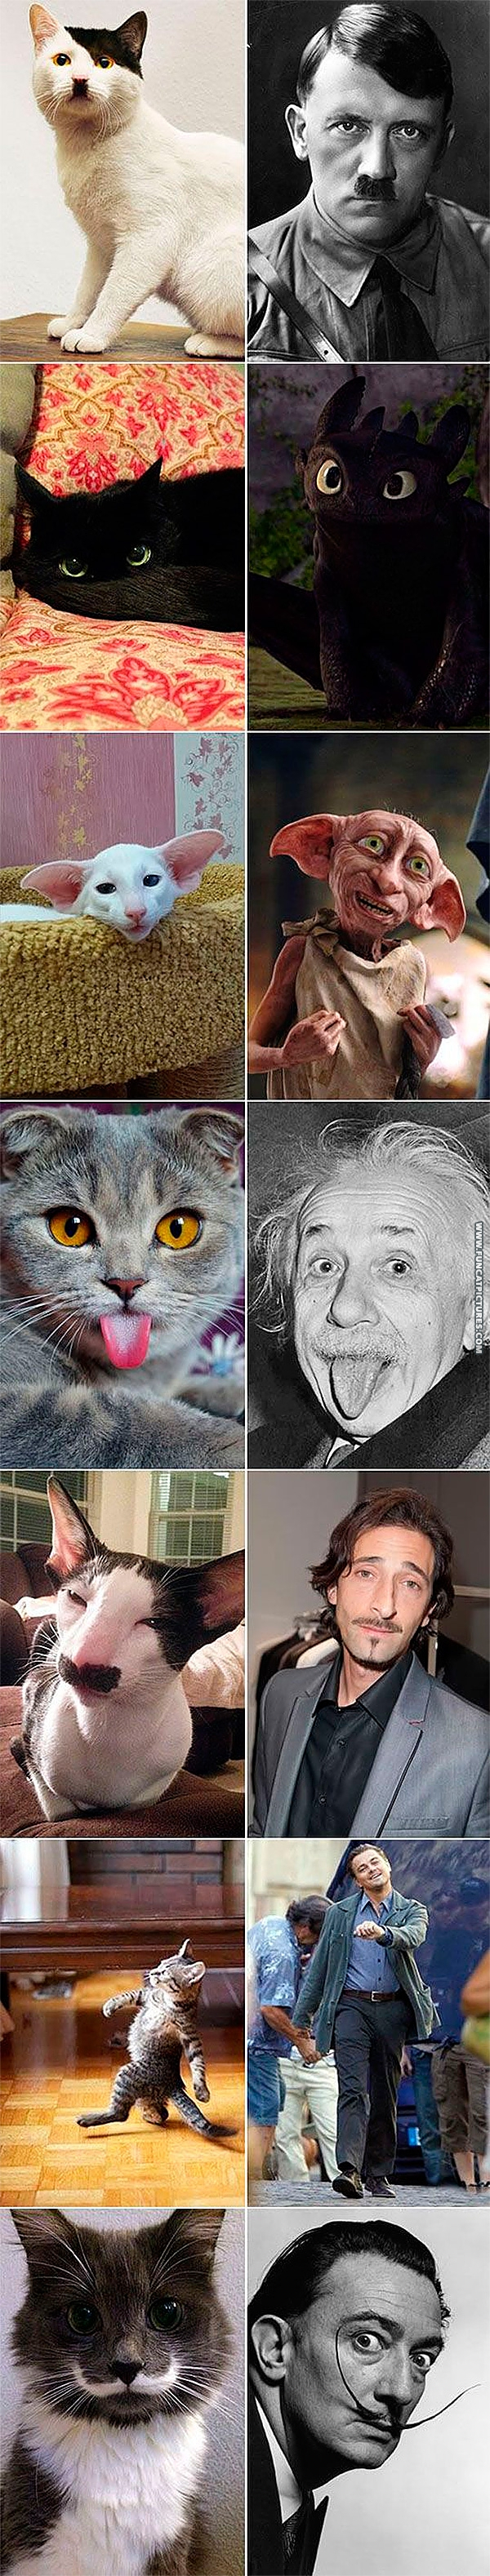 funny-cat-pictures-cats-and-their-doppelganger